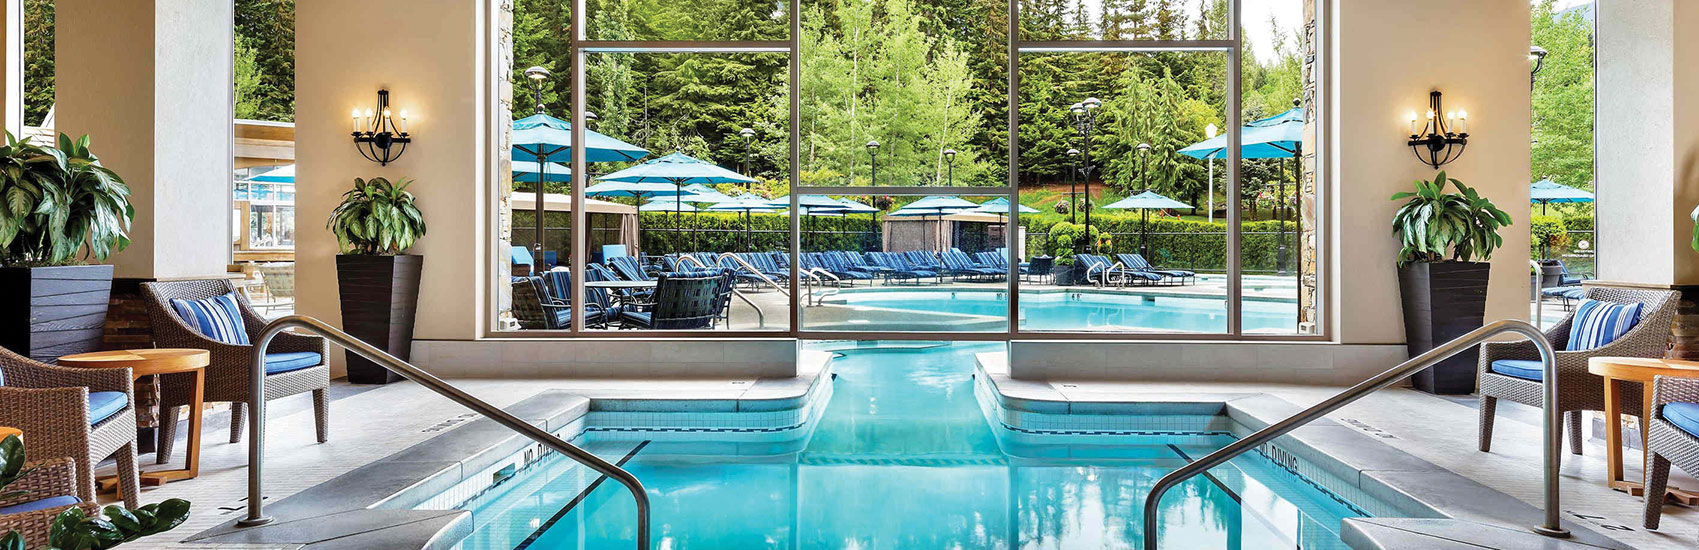 The Fairmont Chateau Whistler 3